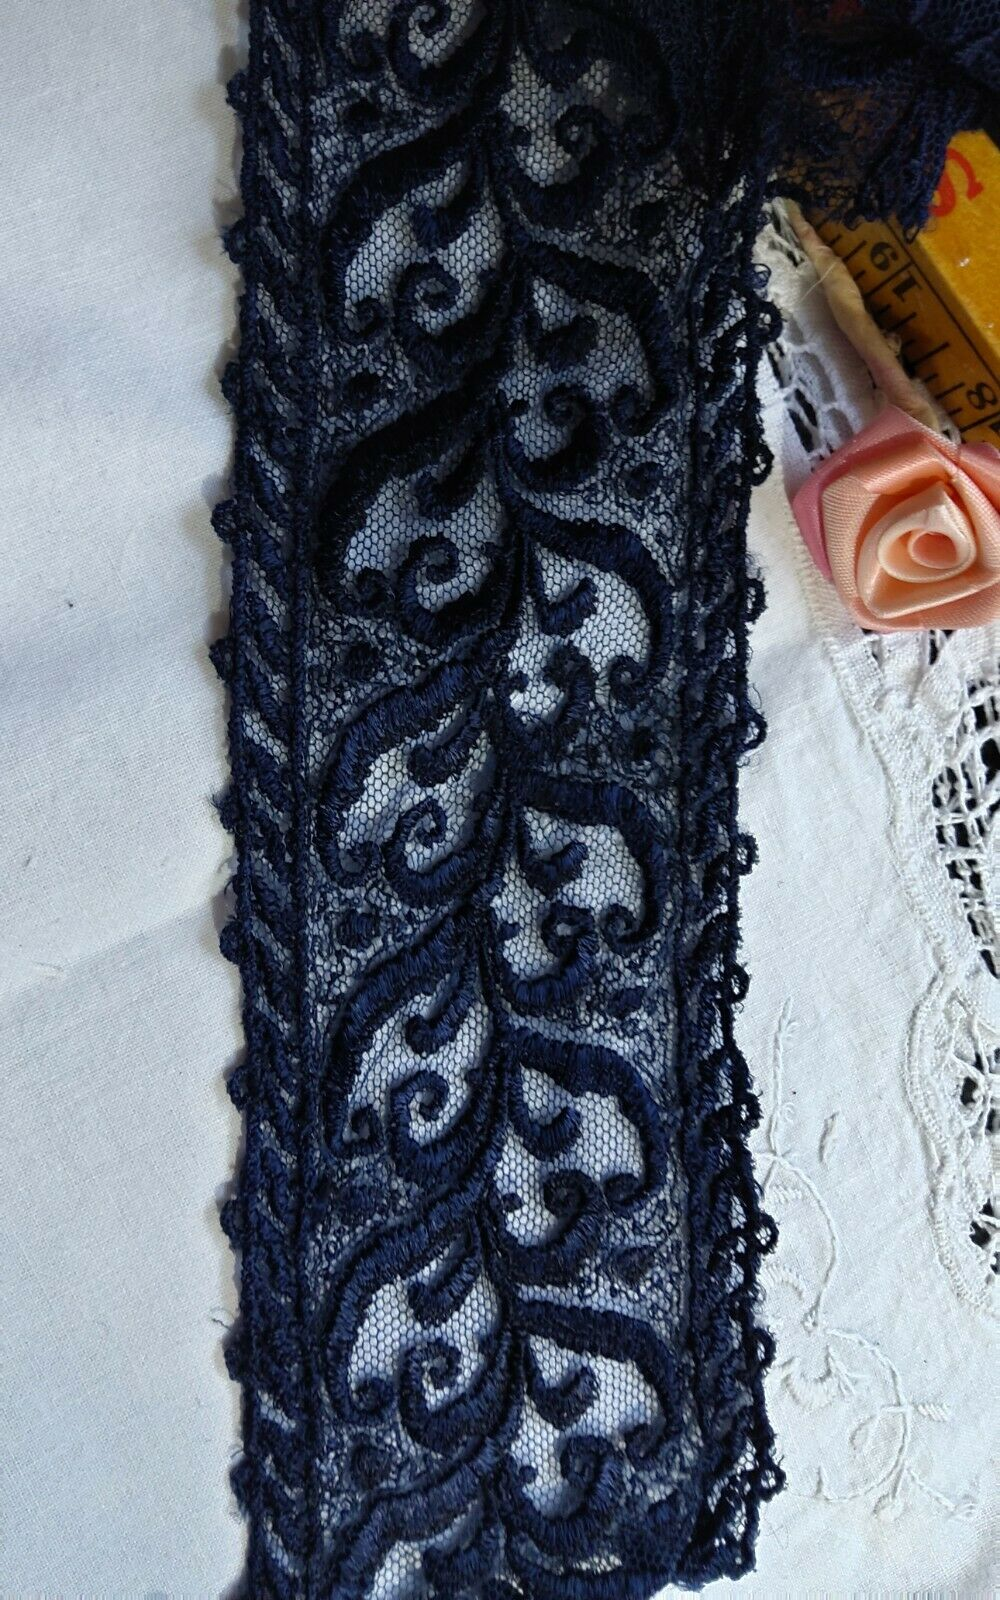 ANTIQUE RAYON EMBROIDERED NET LACE dk Blue 44 In X 3 In Wide French  - $6.00